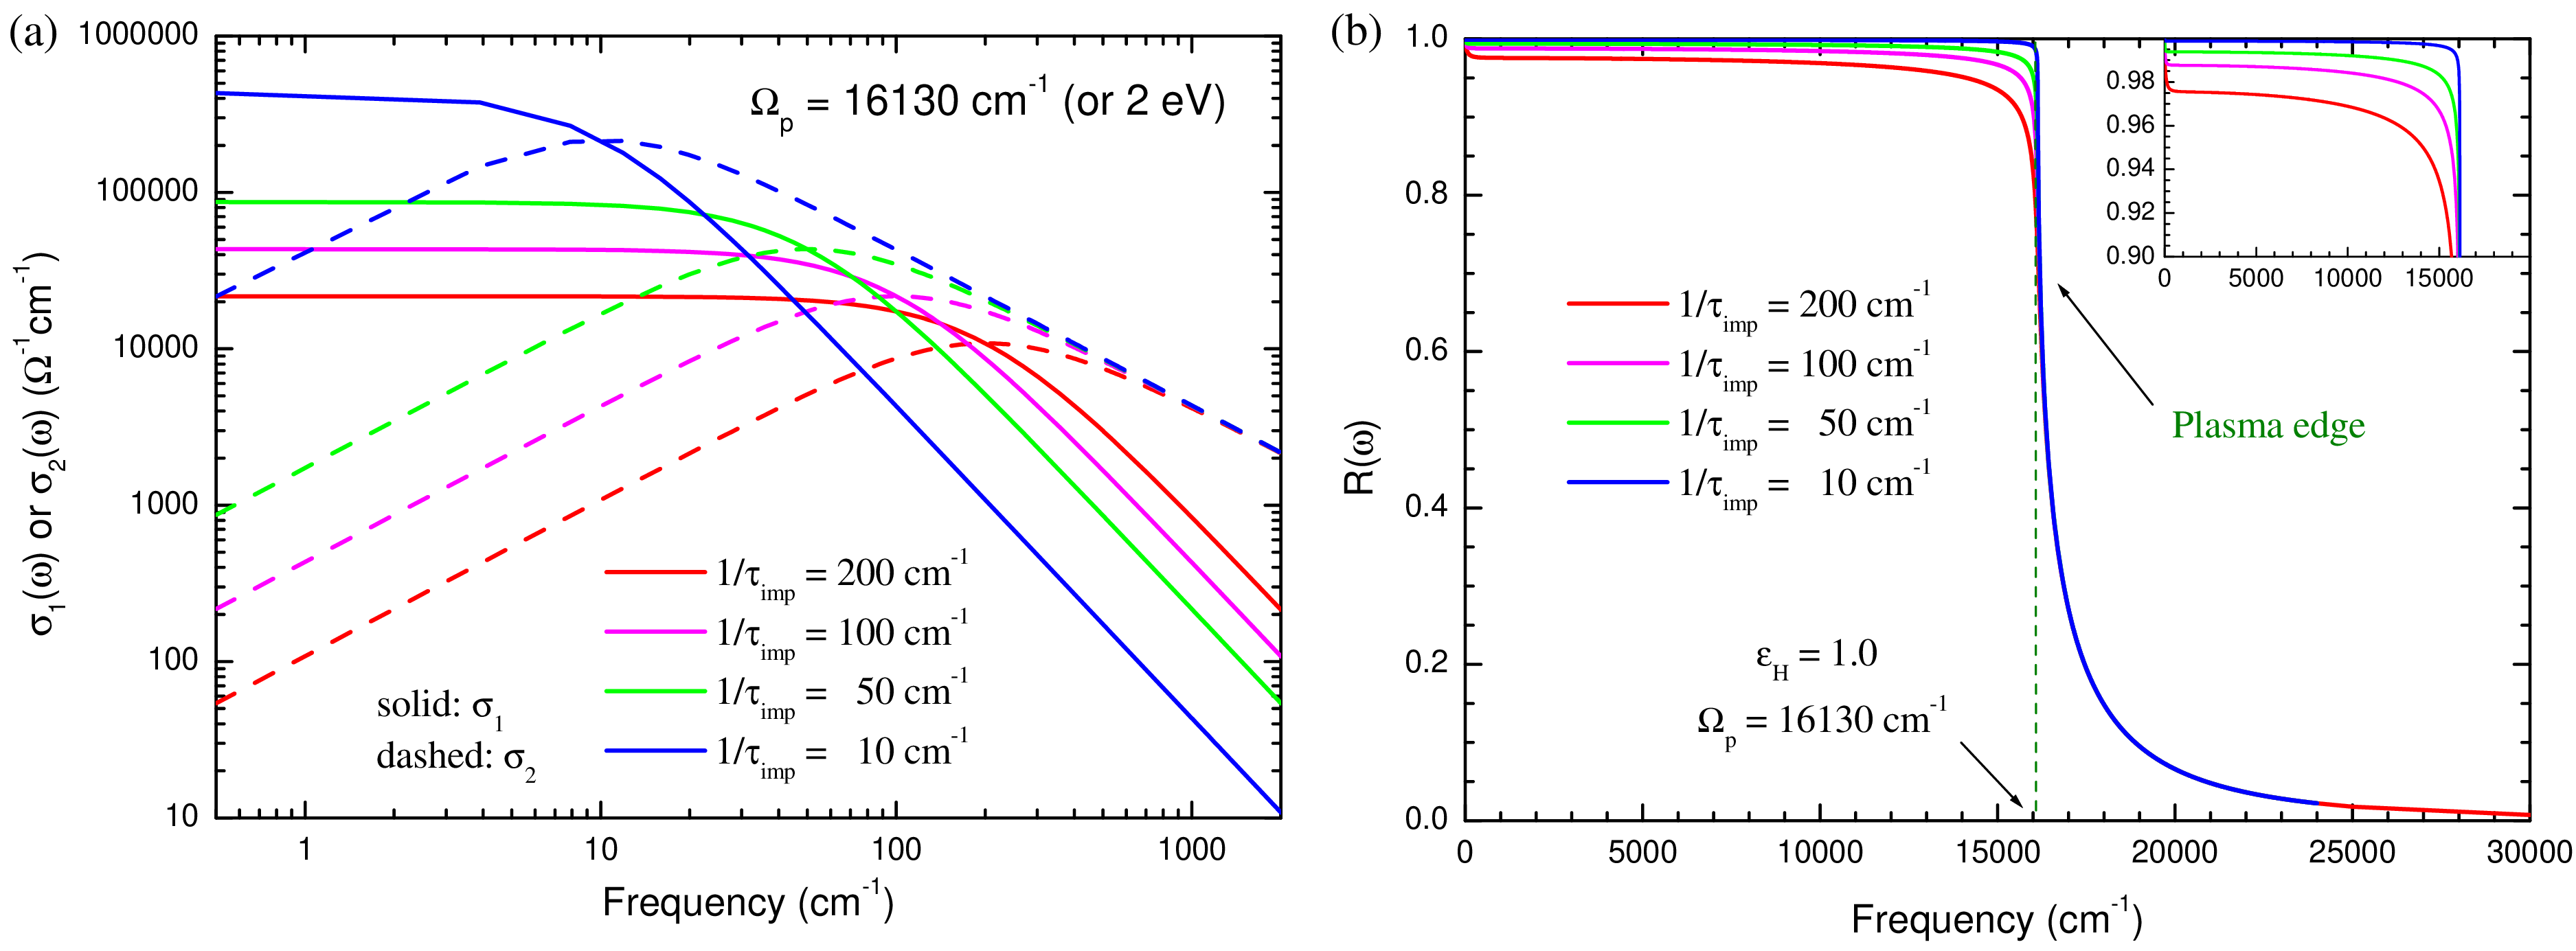 Fig. 2. (a) Real and imaginary parts of the Drude optical conductivity for four different impurity scattering rates. (b) Corresponding reflectance spectra.